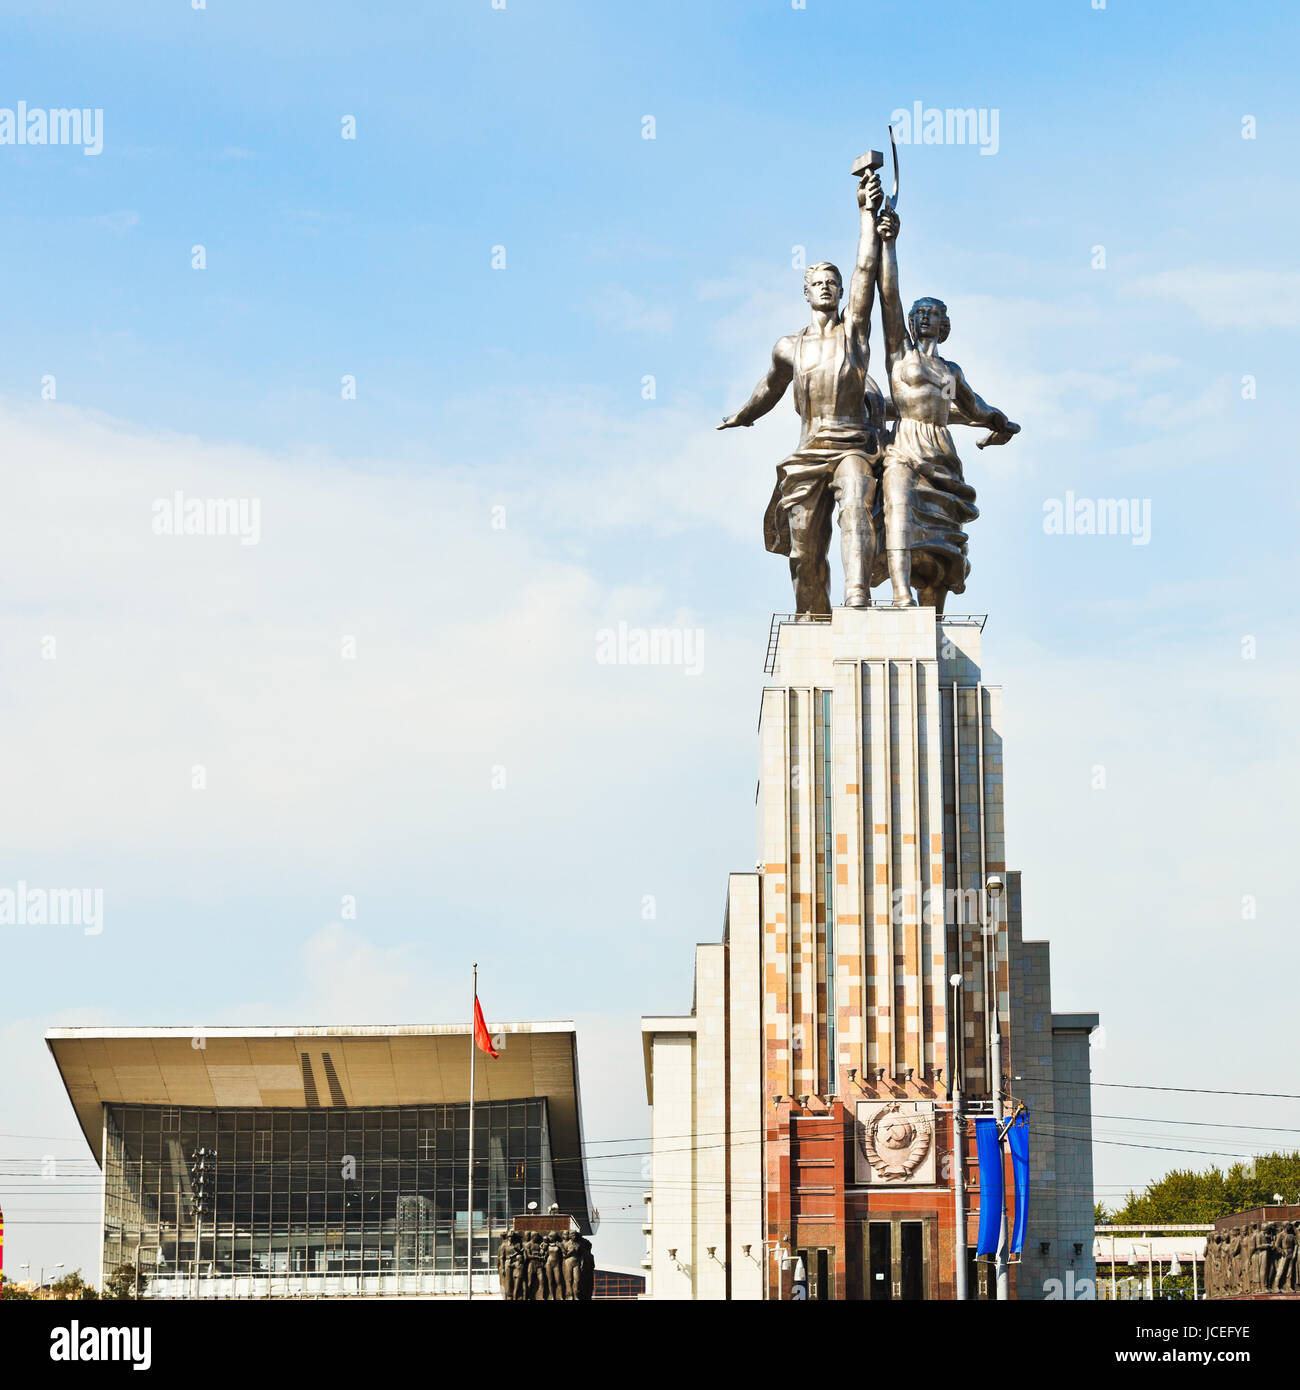 MOSCOW, RUSSIA - SEPTEMBER 13, 2014: Rabochiy i Kolkhoznitsa (Worker and Kolkhoz Woman) sculpture in Moscow. The - Stock Image